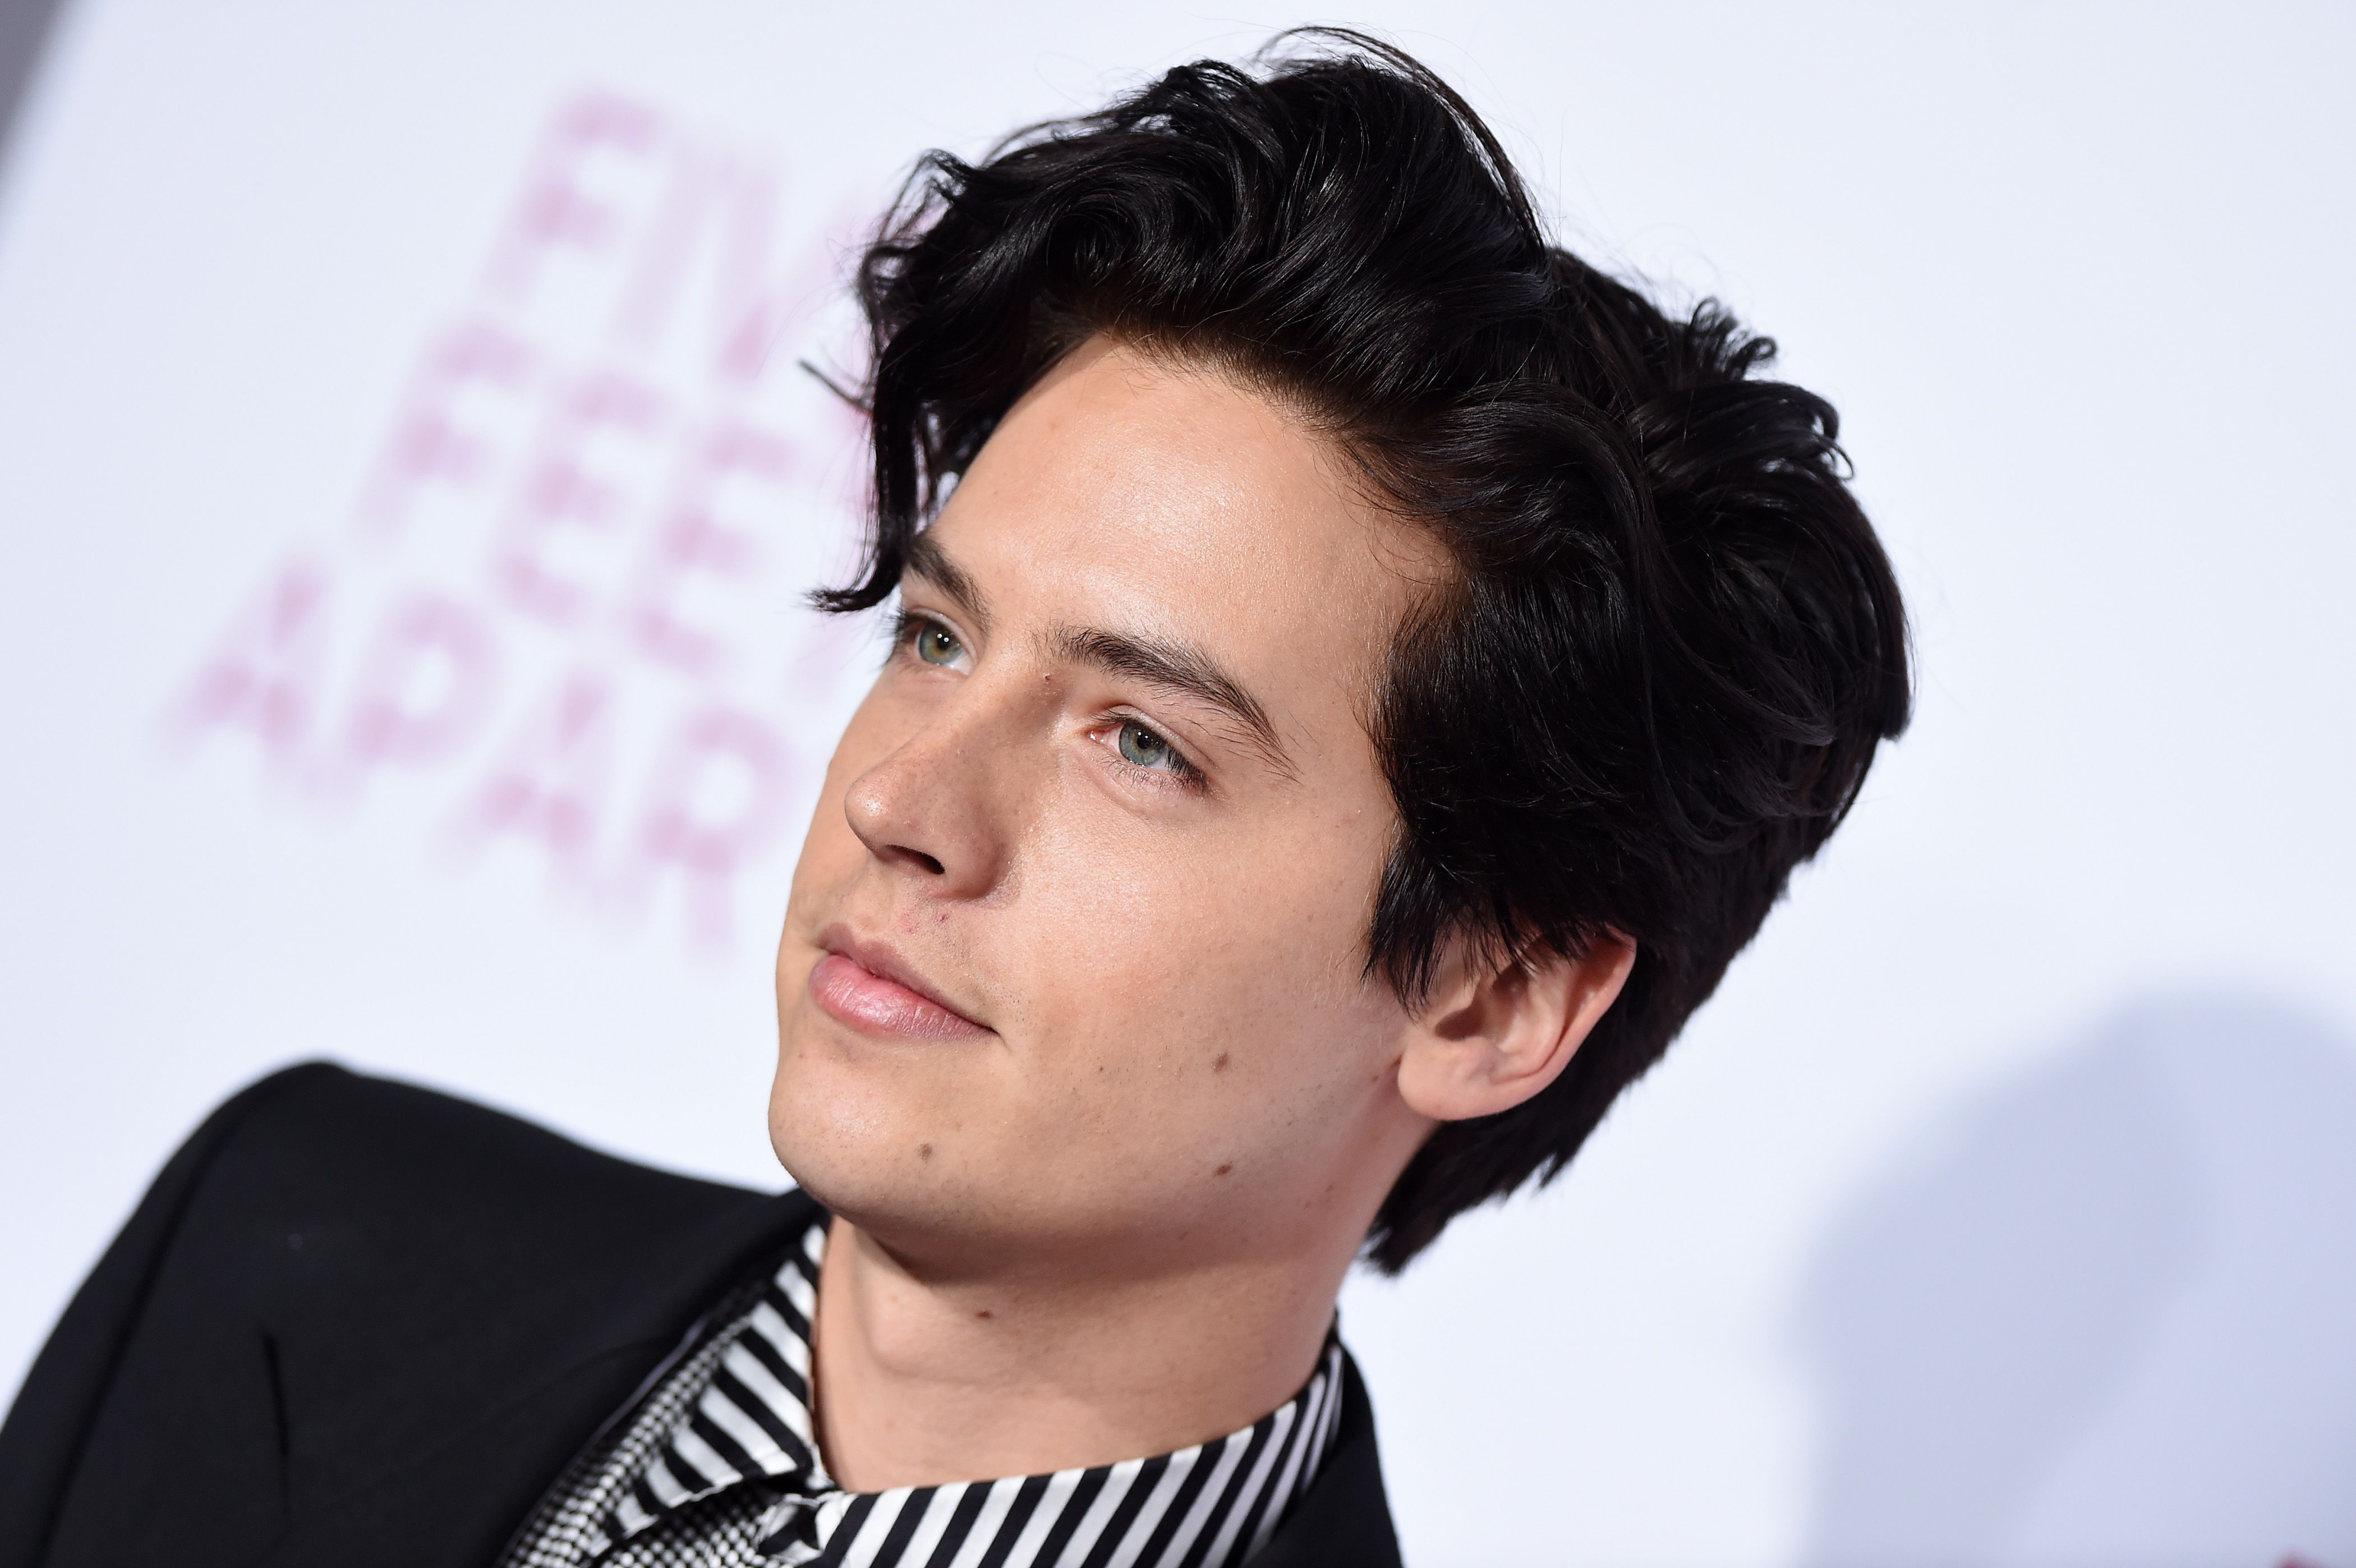 Cole Sprouse Arrested at Black Lives Matter Protest in L.A.